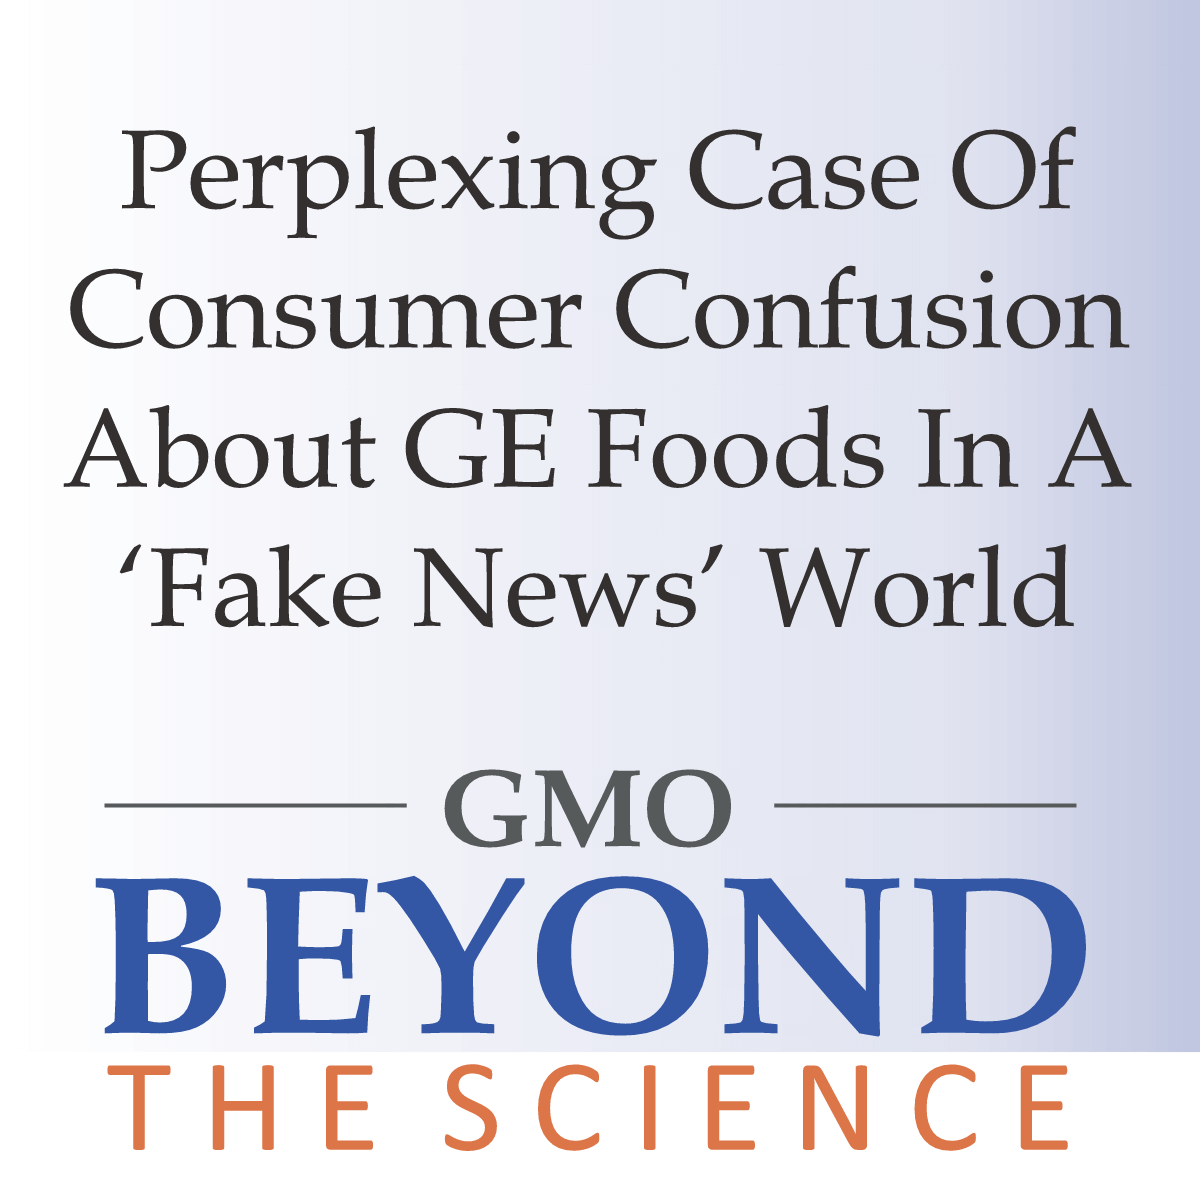 Perplexing Case Of Consumer Confusion About GE Foods In a 'Fake News' World